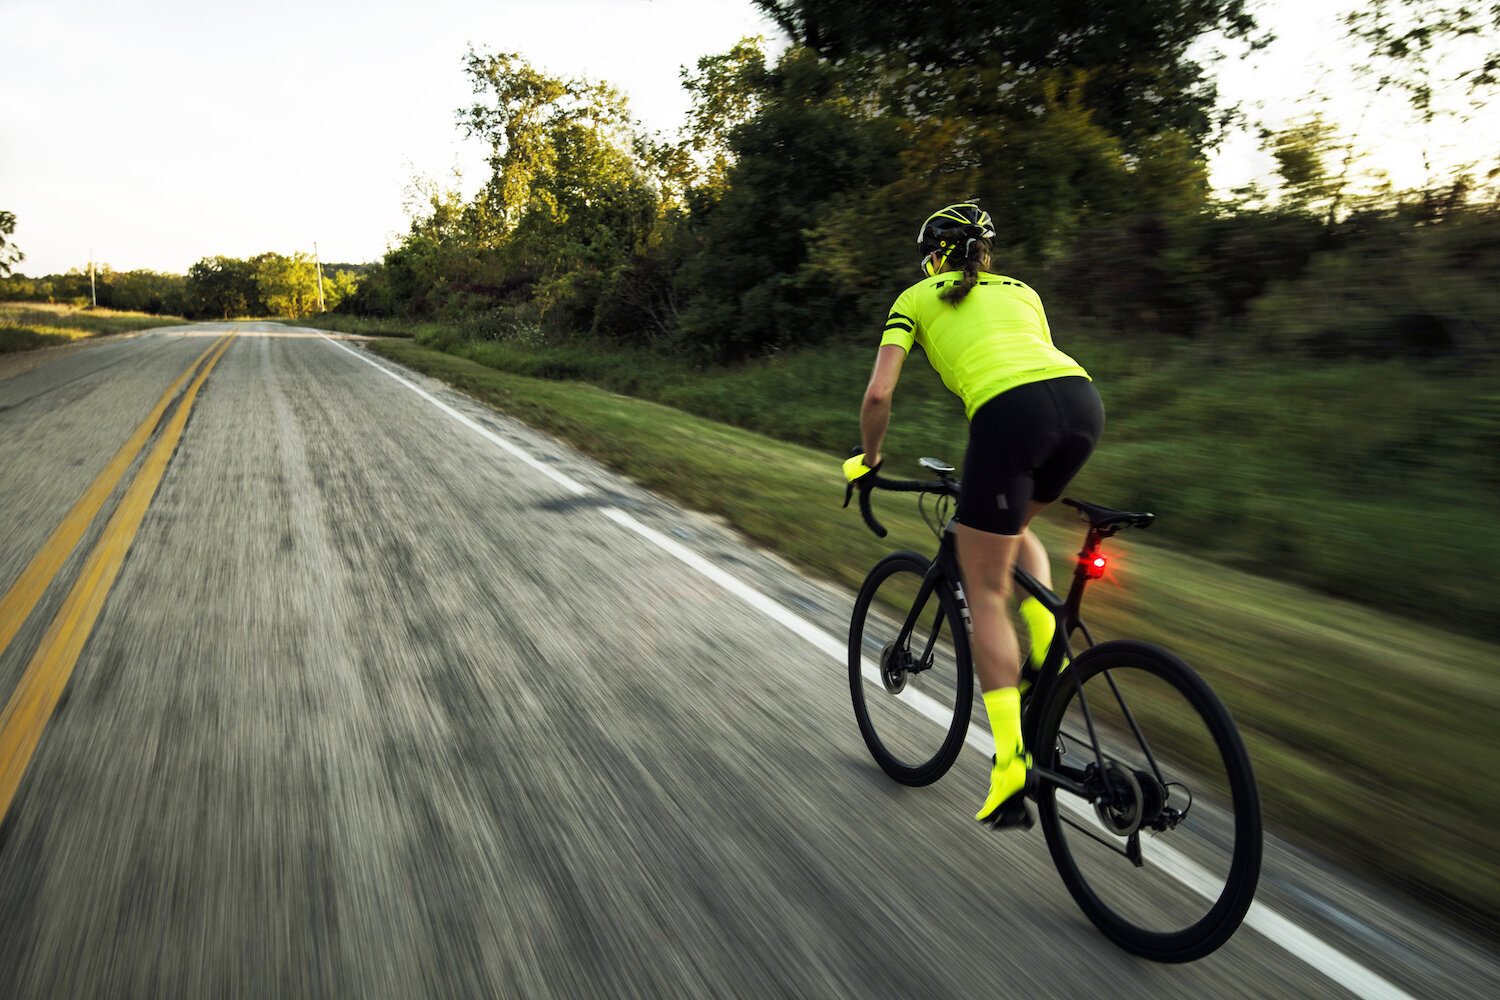 A bicyclist riding down a road, wearing bright colors.